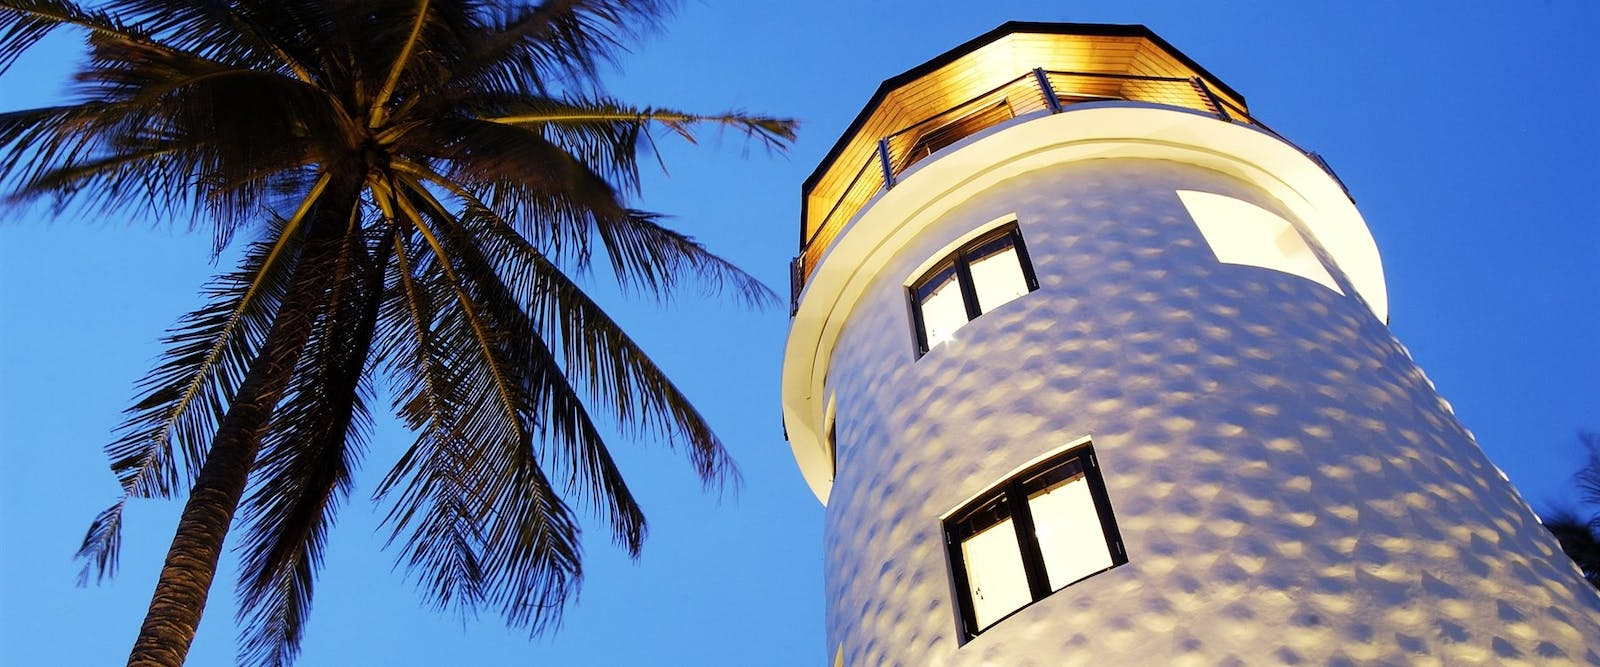 Lighthouse at night at The Racha